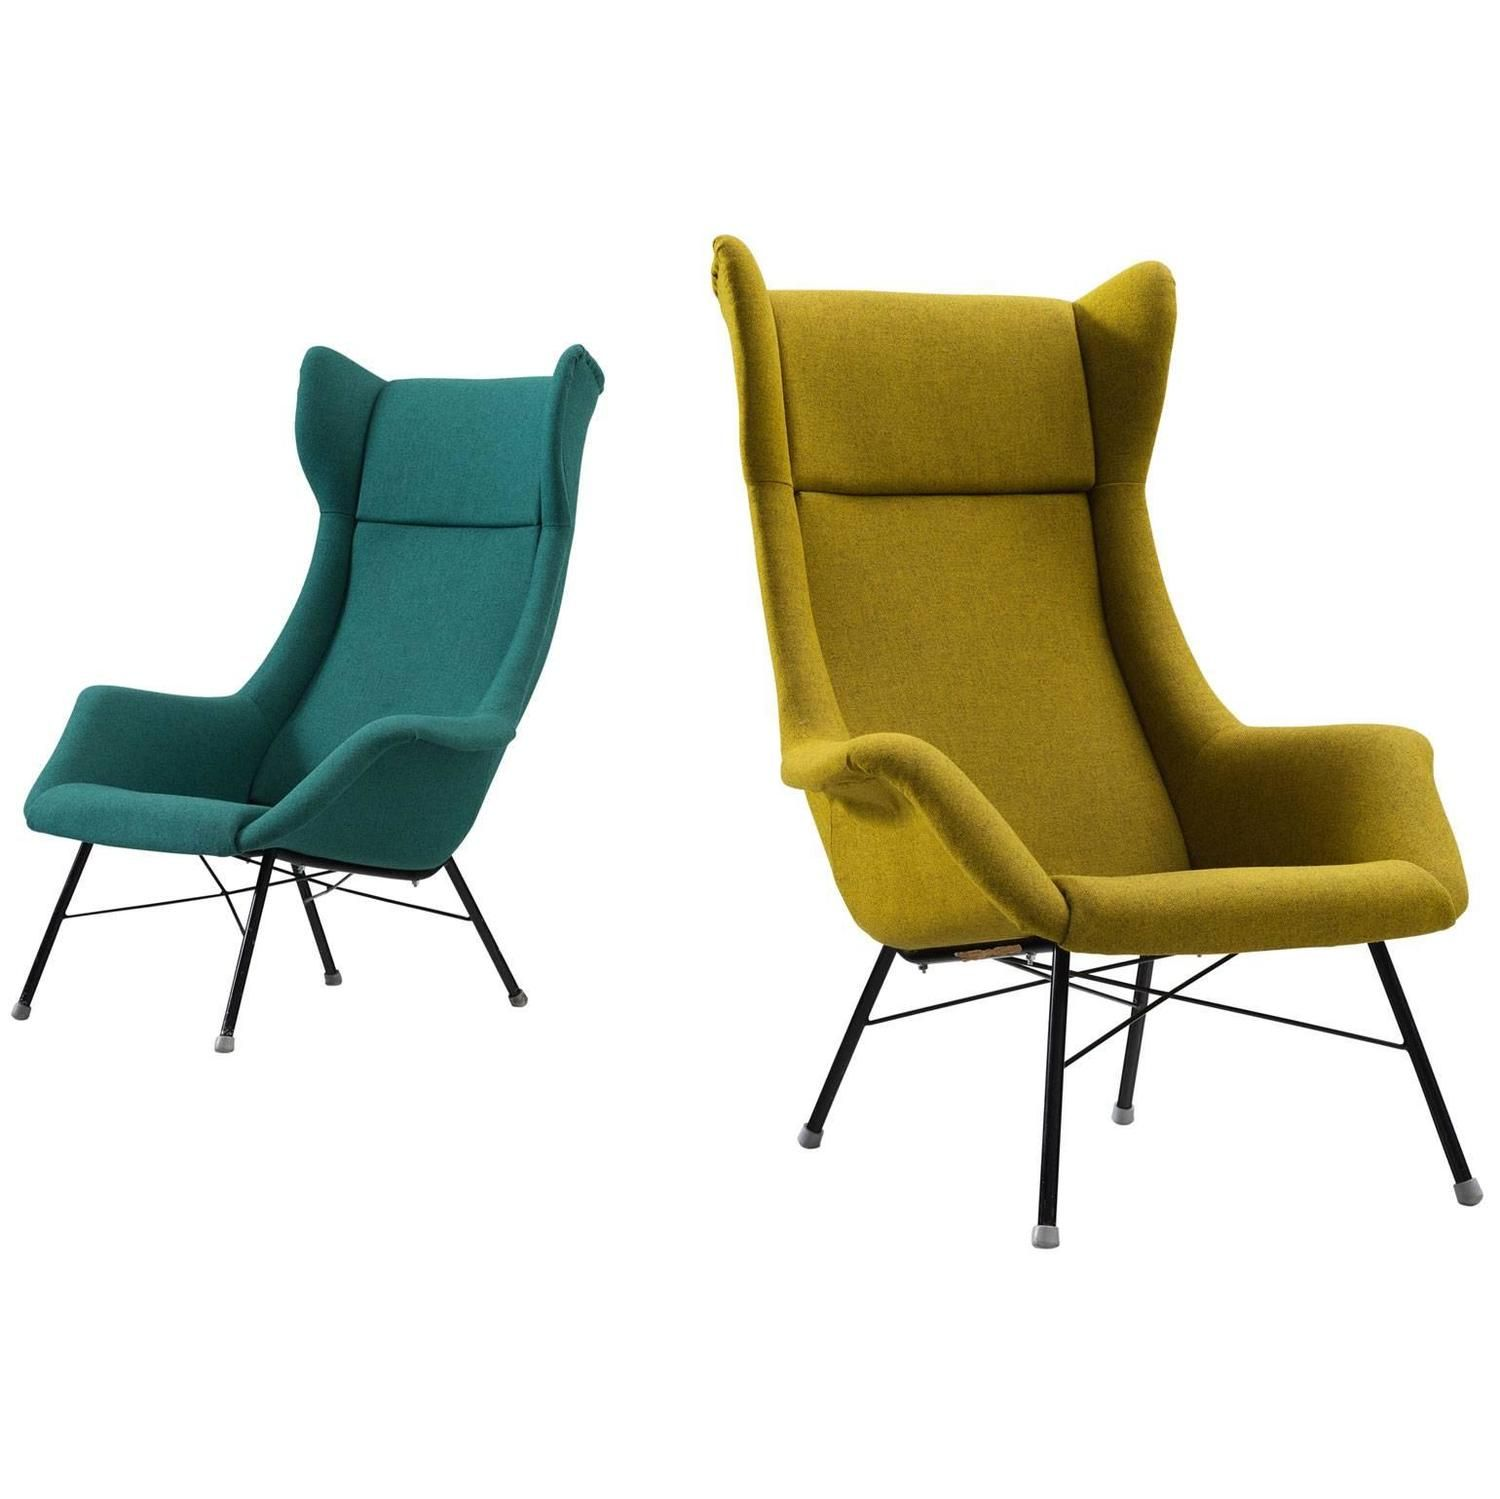 Pair Of Reupholstered Midcentury High Back Chairs